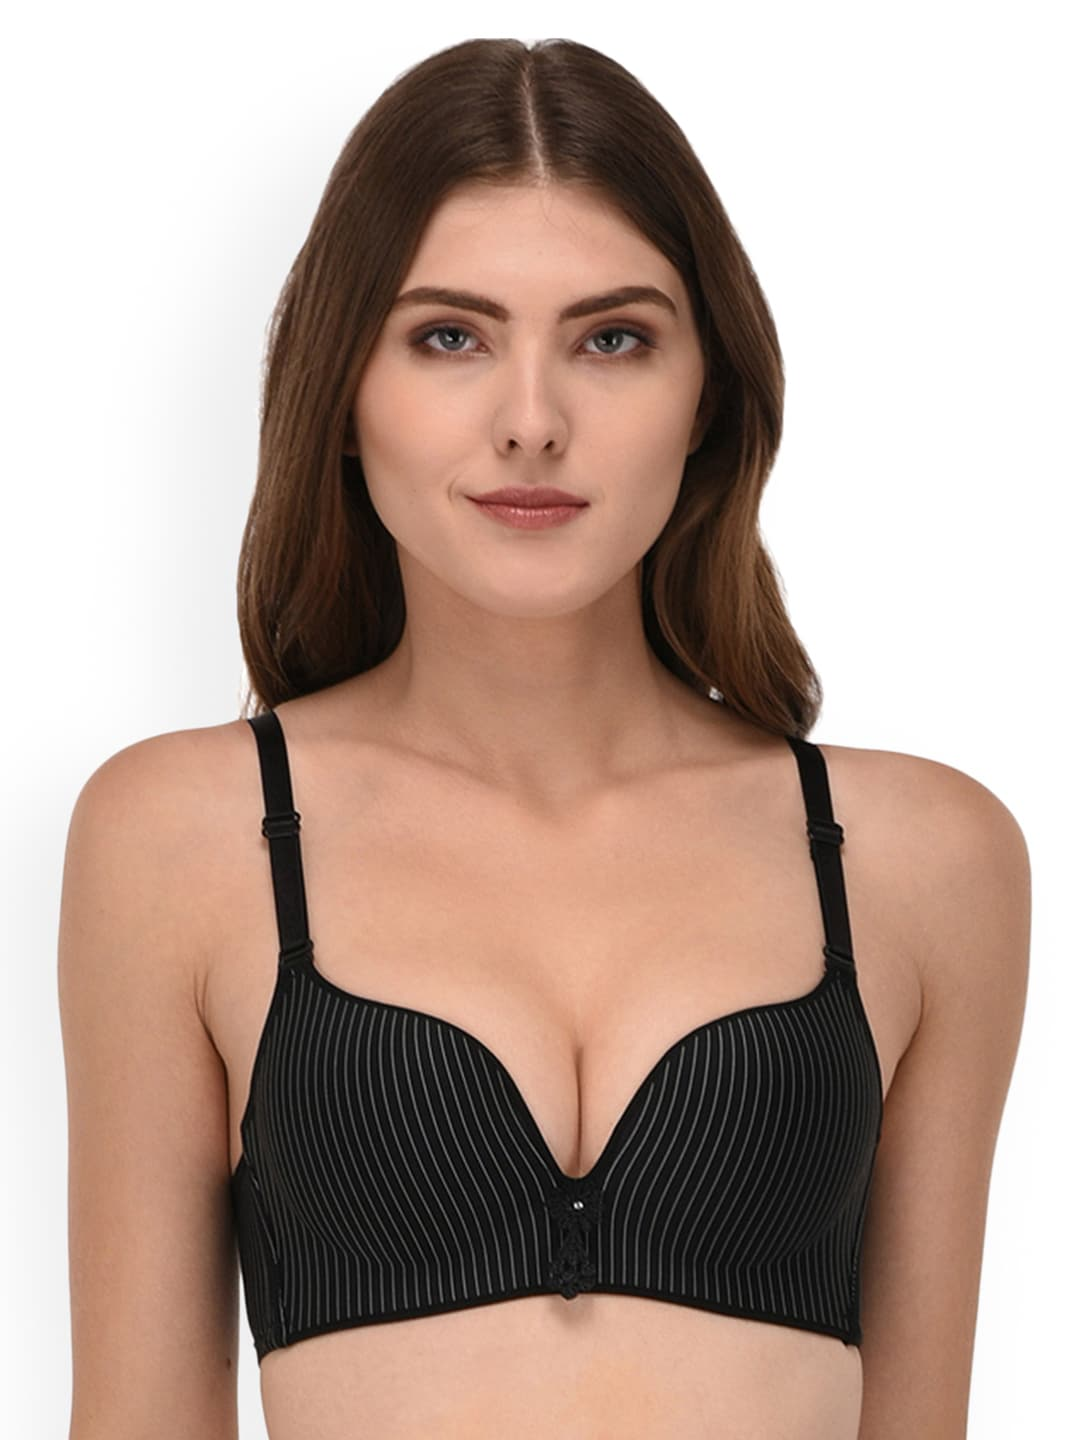 fd03559ef2 Women Bra - Buy Best Bras for Women Online in India